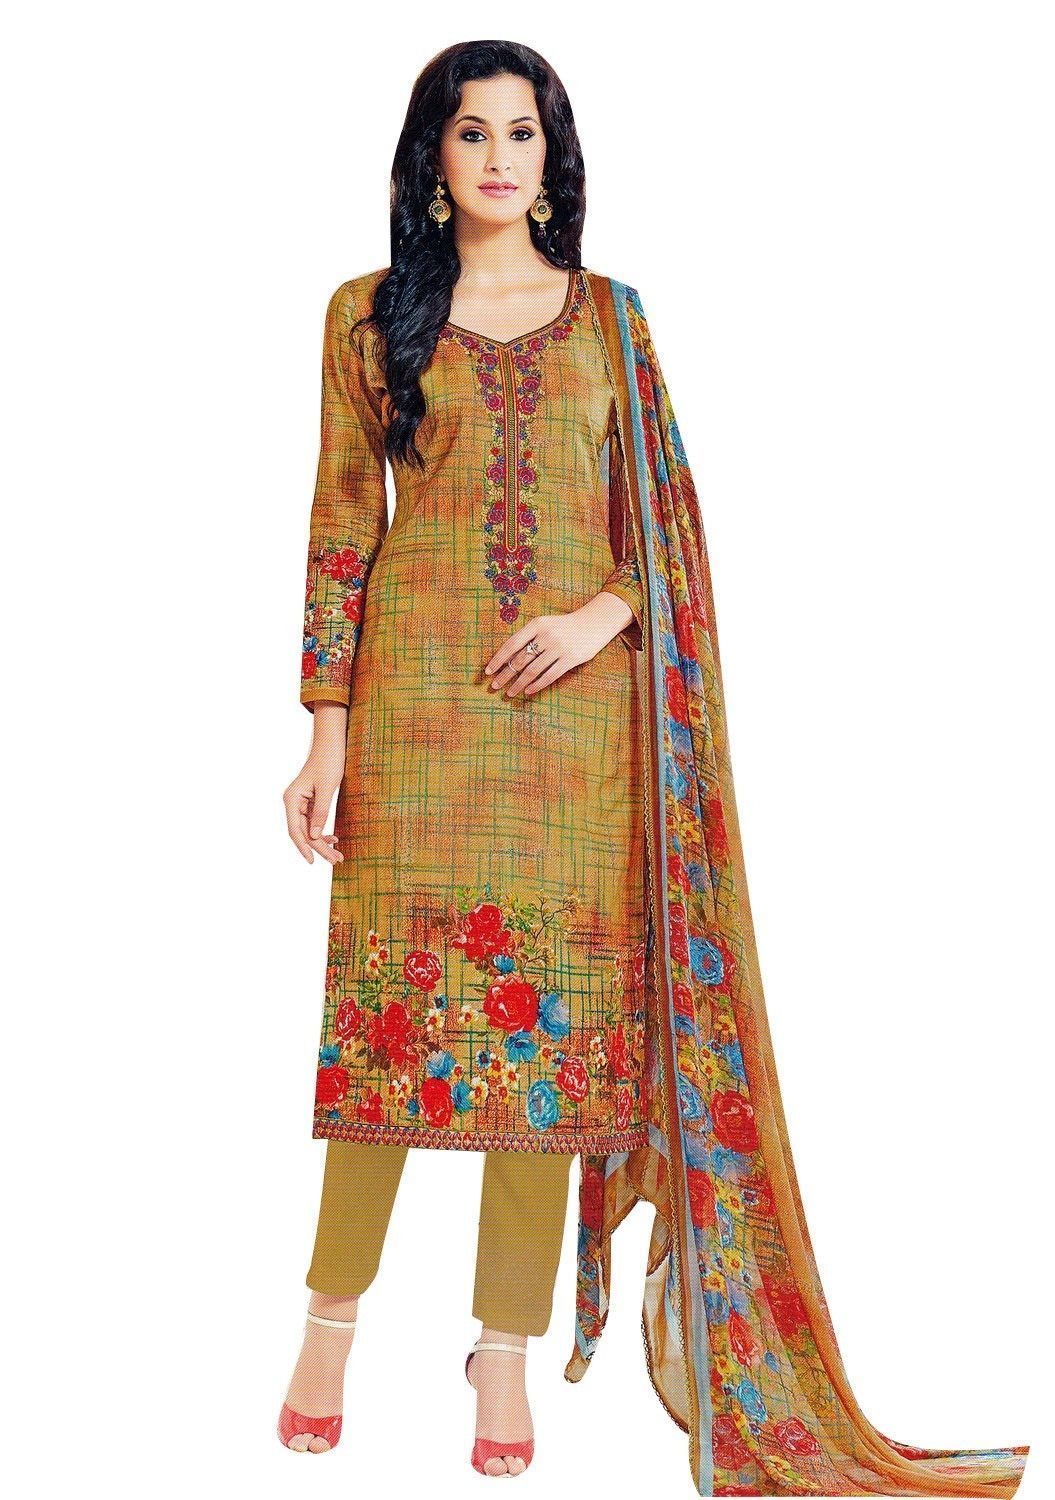 f0413b38e9 Readymade Cotton Embroidered Salwar Kameez Gorgeous Printed Indian Dress  Ready to wear Salwar Suit #SalwarSuit